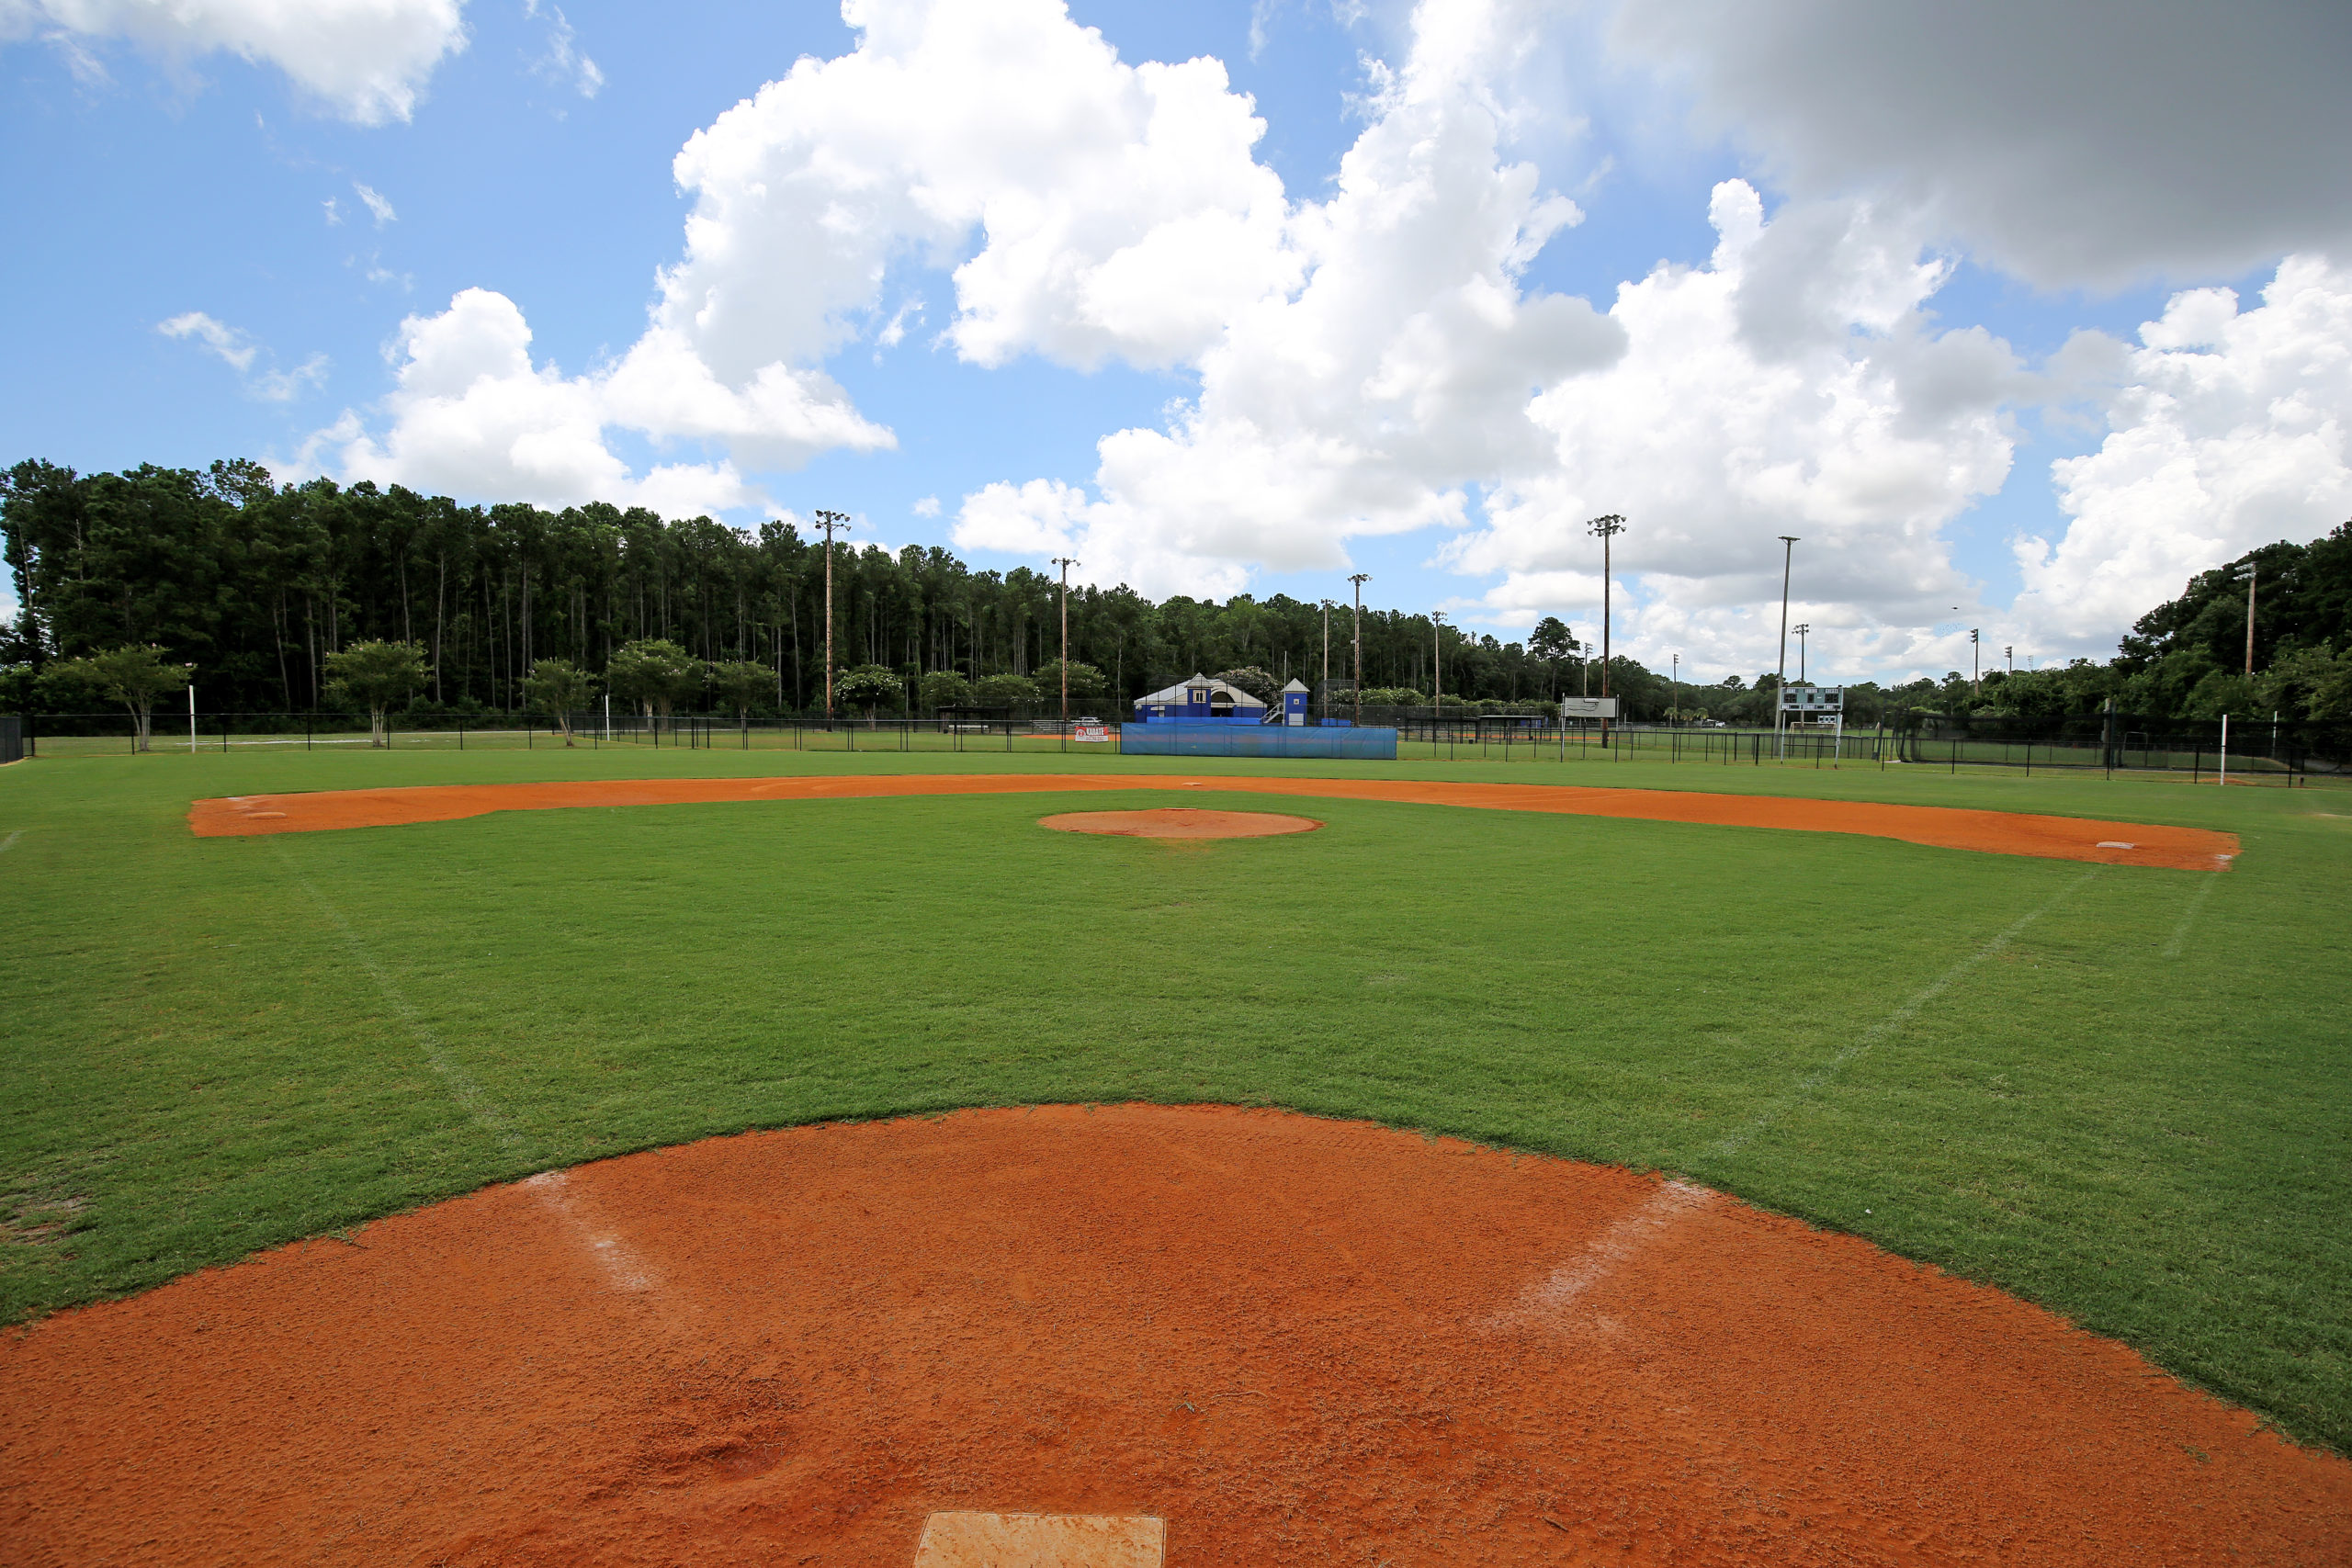 Ballfield with green grass and brown dirt